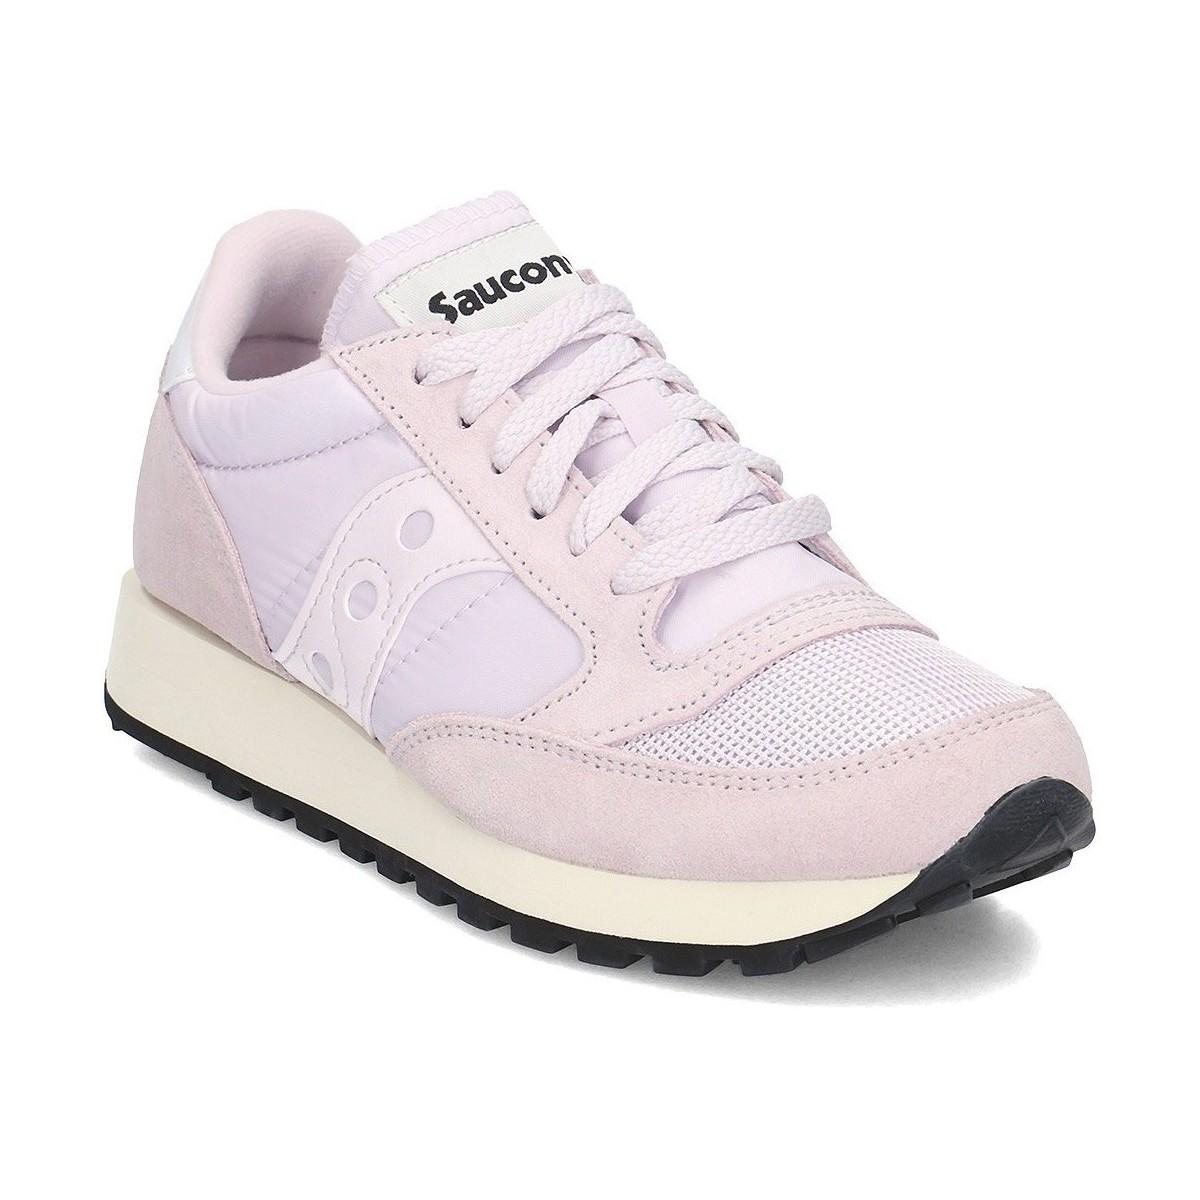 c9ff03613a3 Saucony Jazz Original Women s Shoes (trainers) In Pink in Pink - Lyst